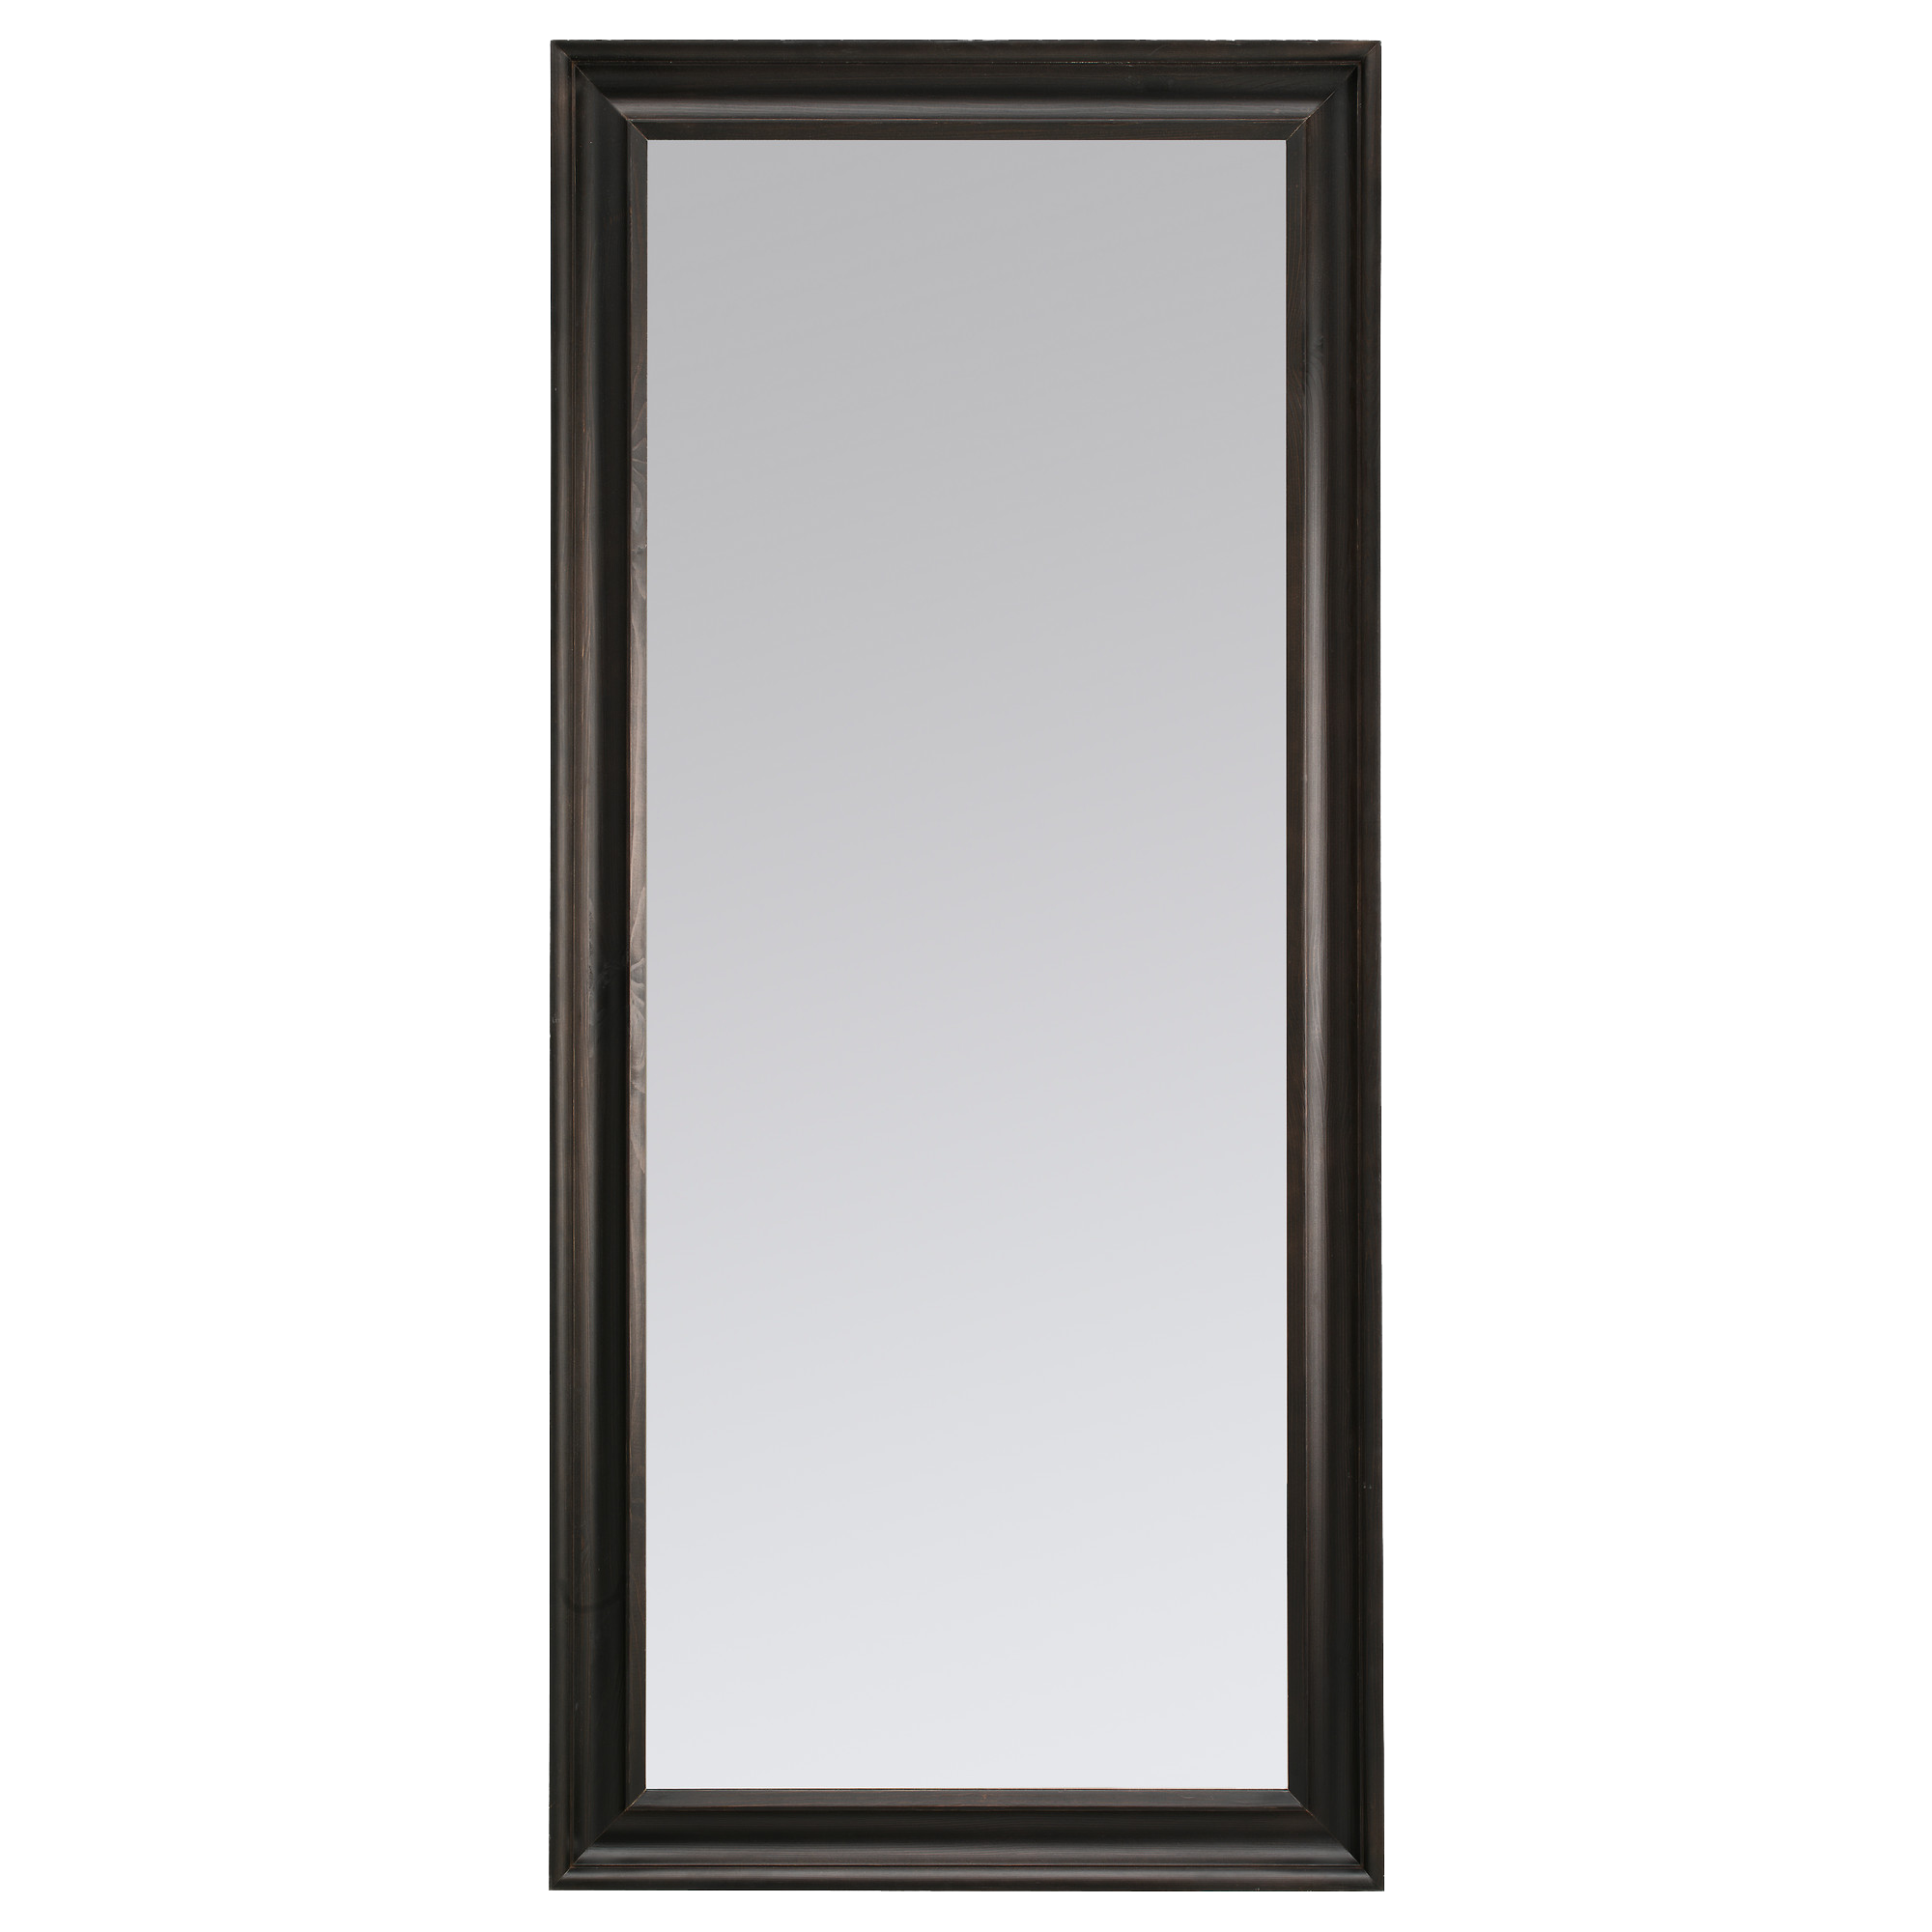 Png image purepng free. Mirror clipart rectangle mirror